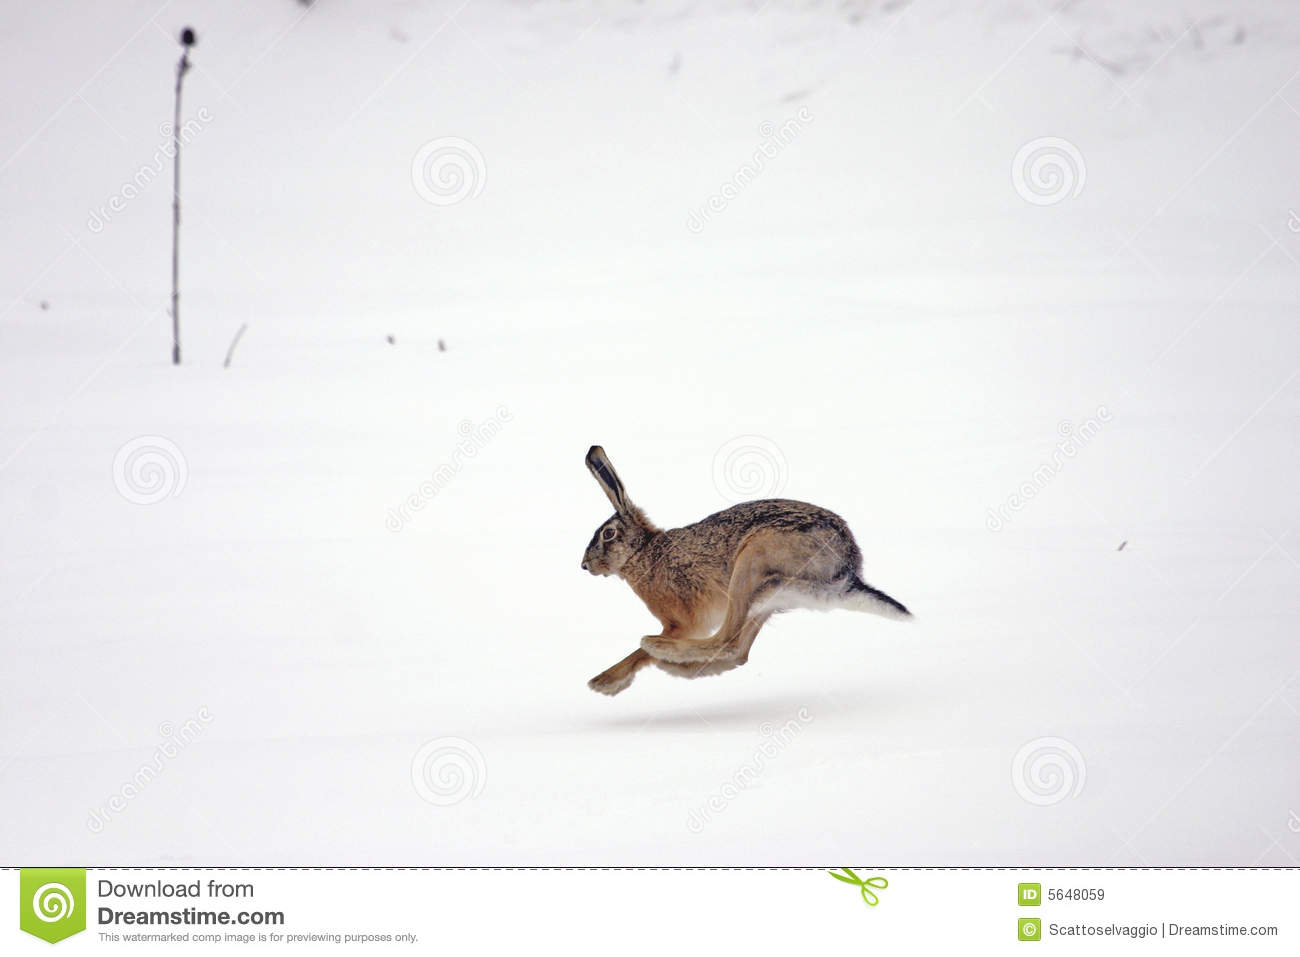 European or brown hare (lepus europaeus) running in the snow.